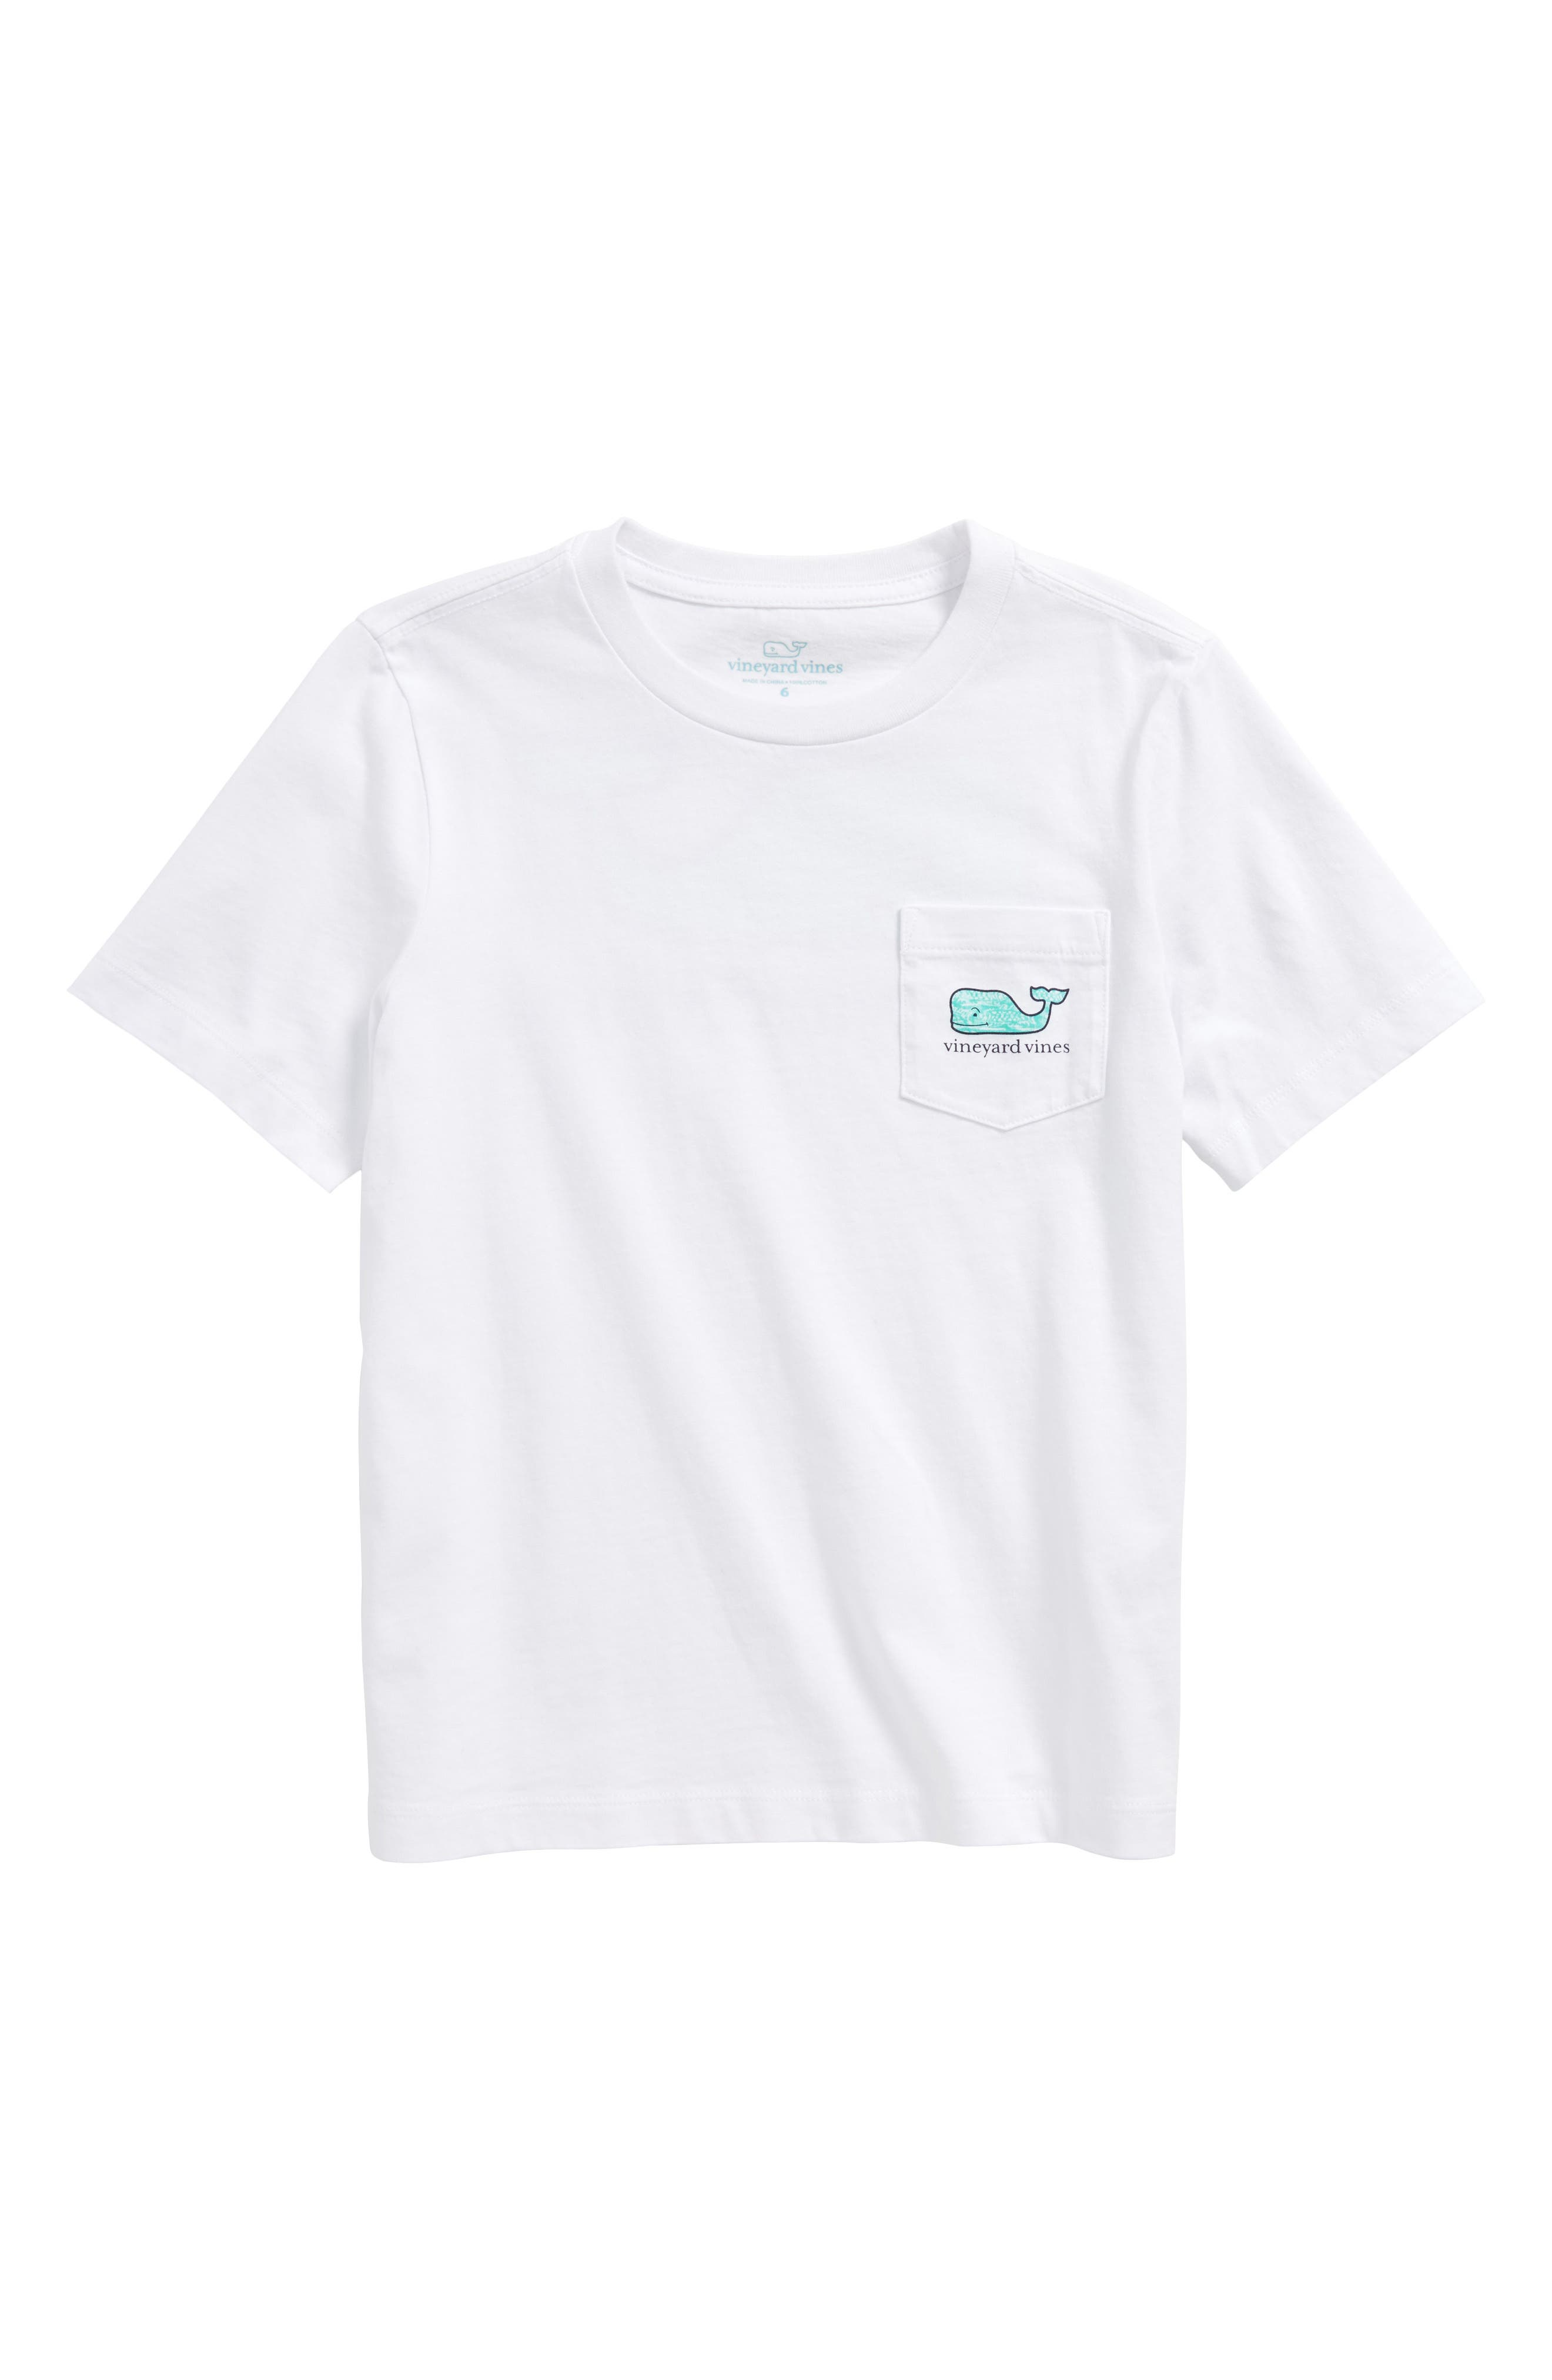 Fish Gate Whale T-Shirt,                             Main thumbnail 1, color,                             White Cap